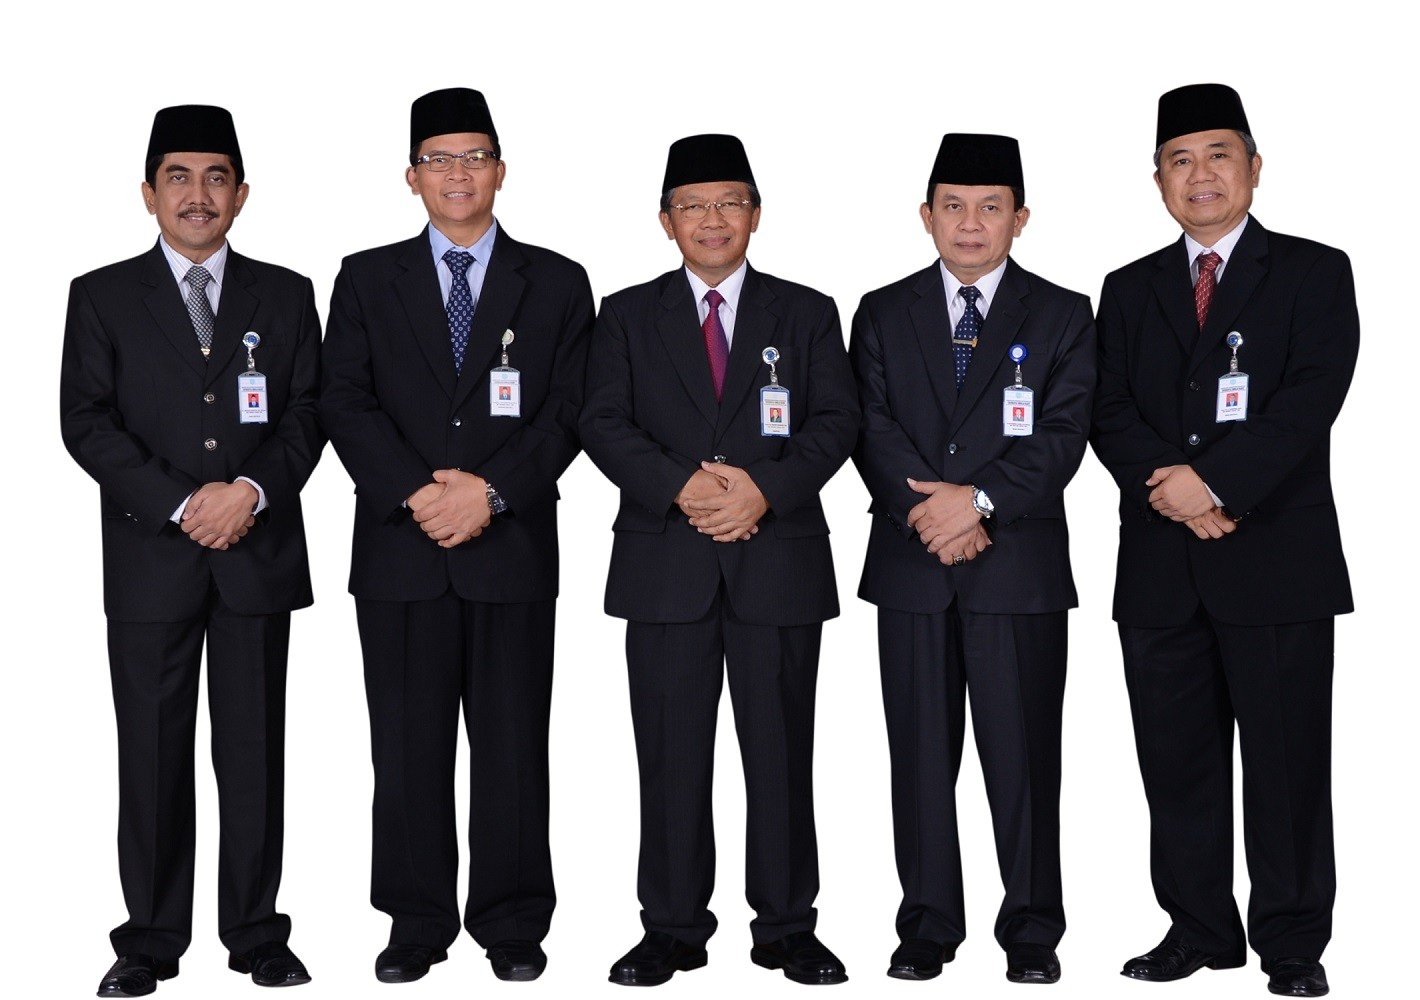 UNS Executive Leader (Period 2015-2019)